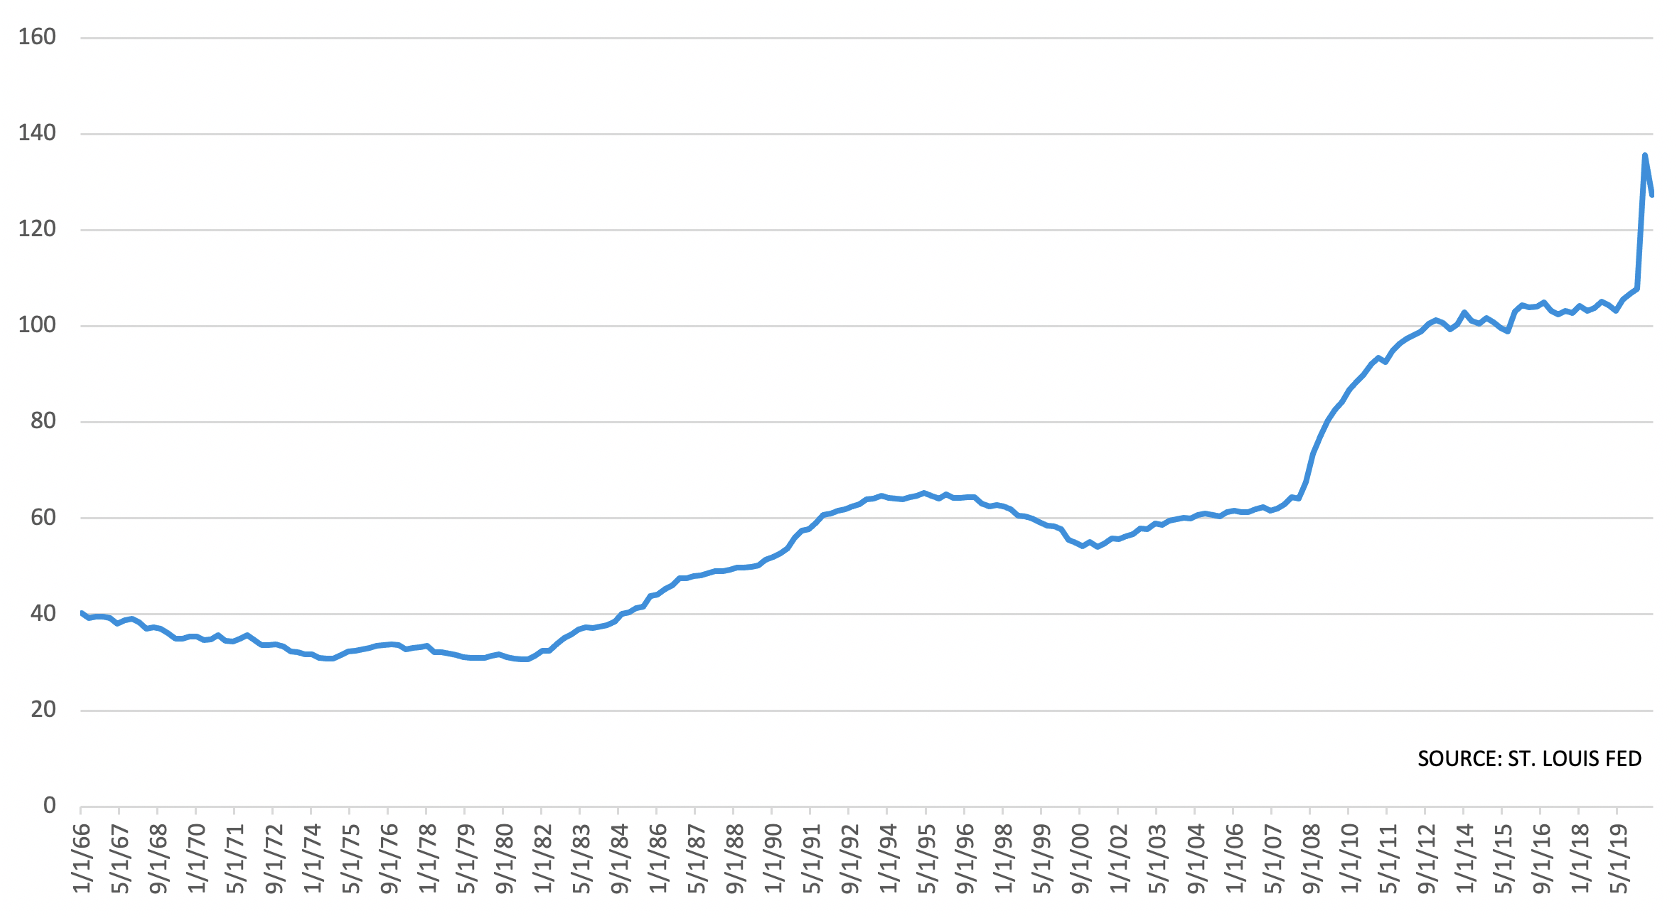 Line graph showing federal debt growing moderately through the 90s, ending in a steep peak from 2019 to date.